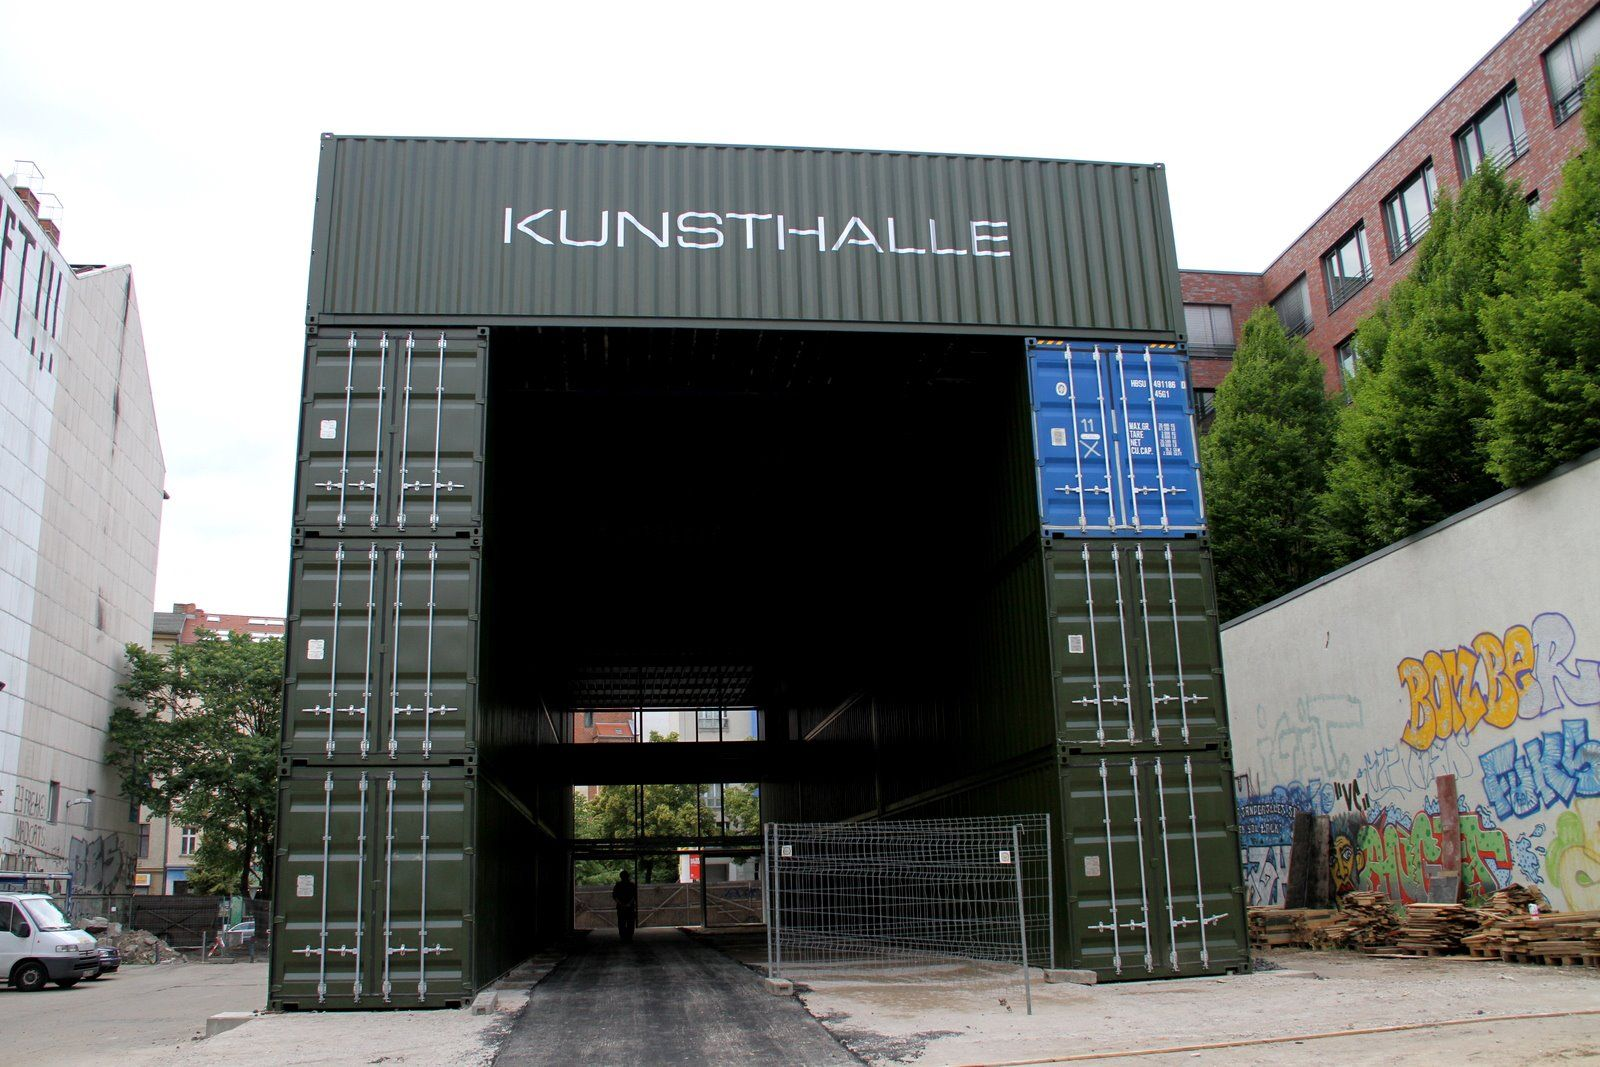 Container Building shipping container homes: platoon, kunsthalle - berlin, germany